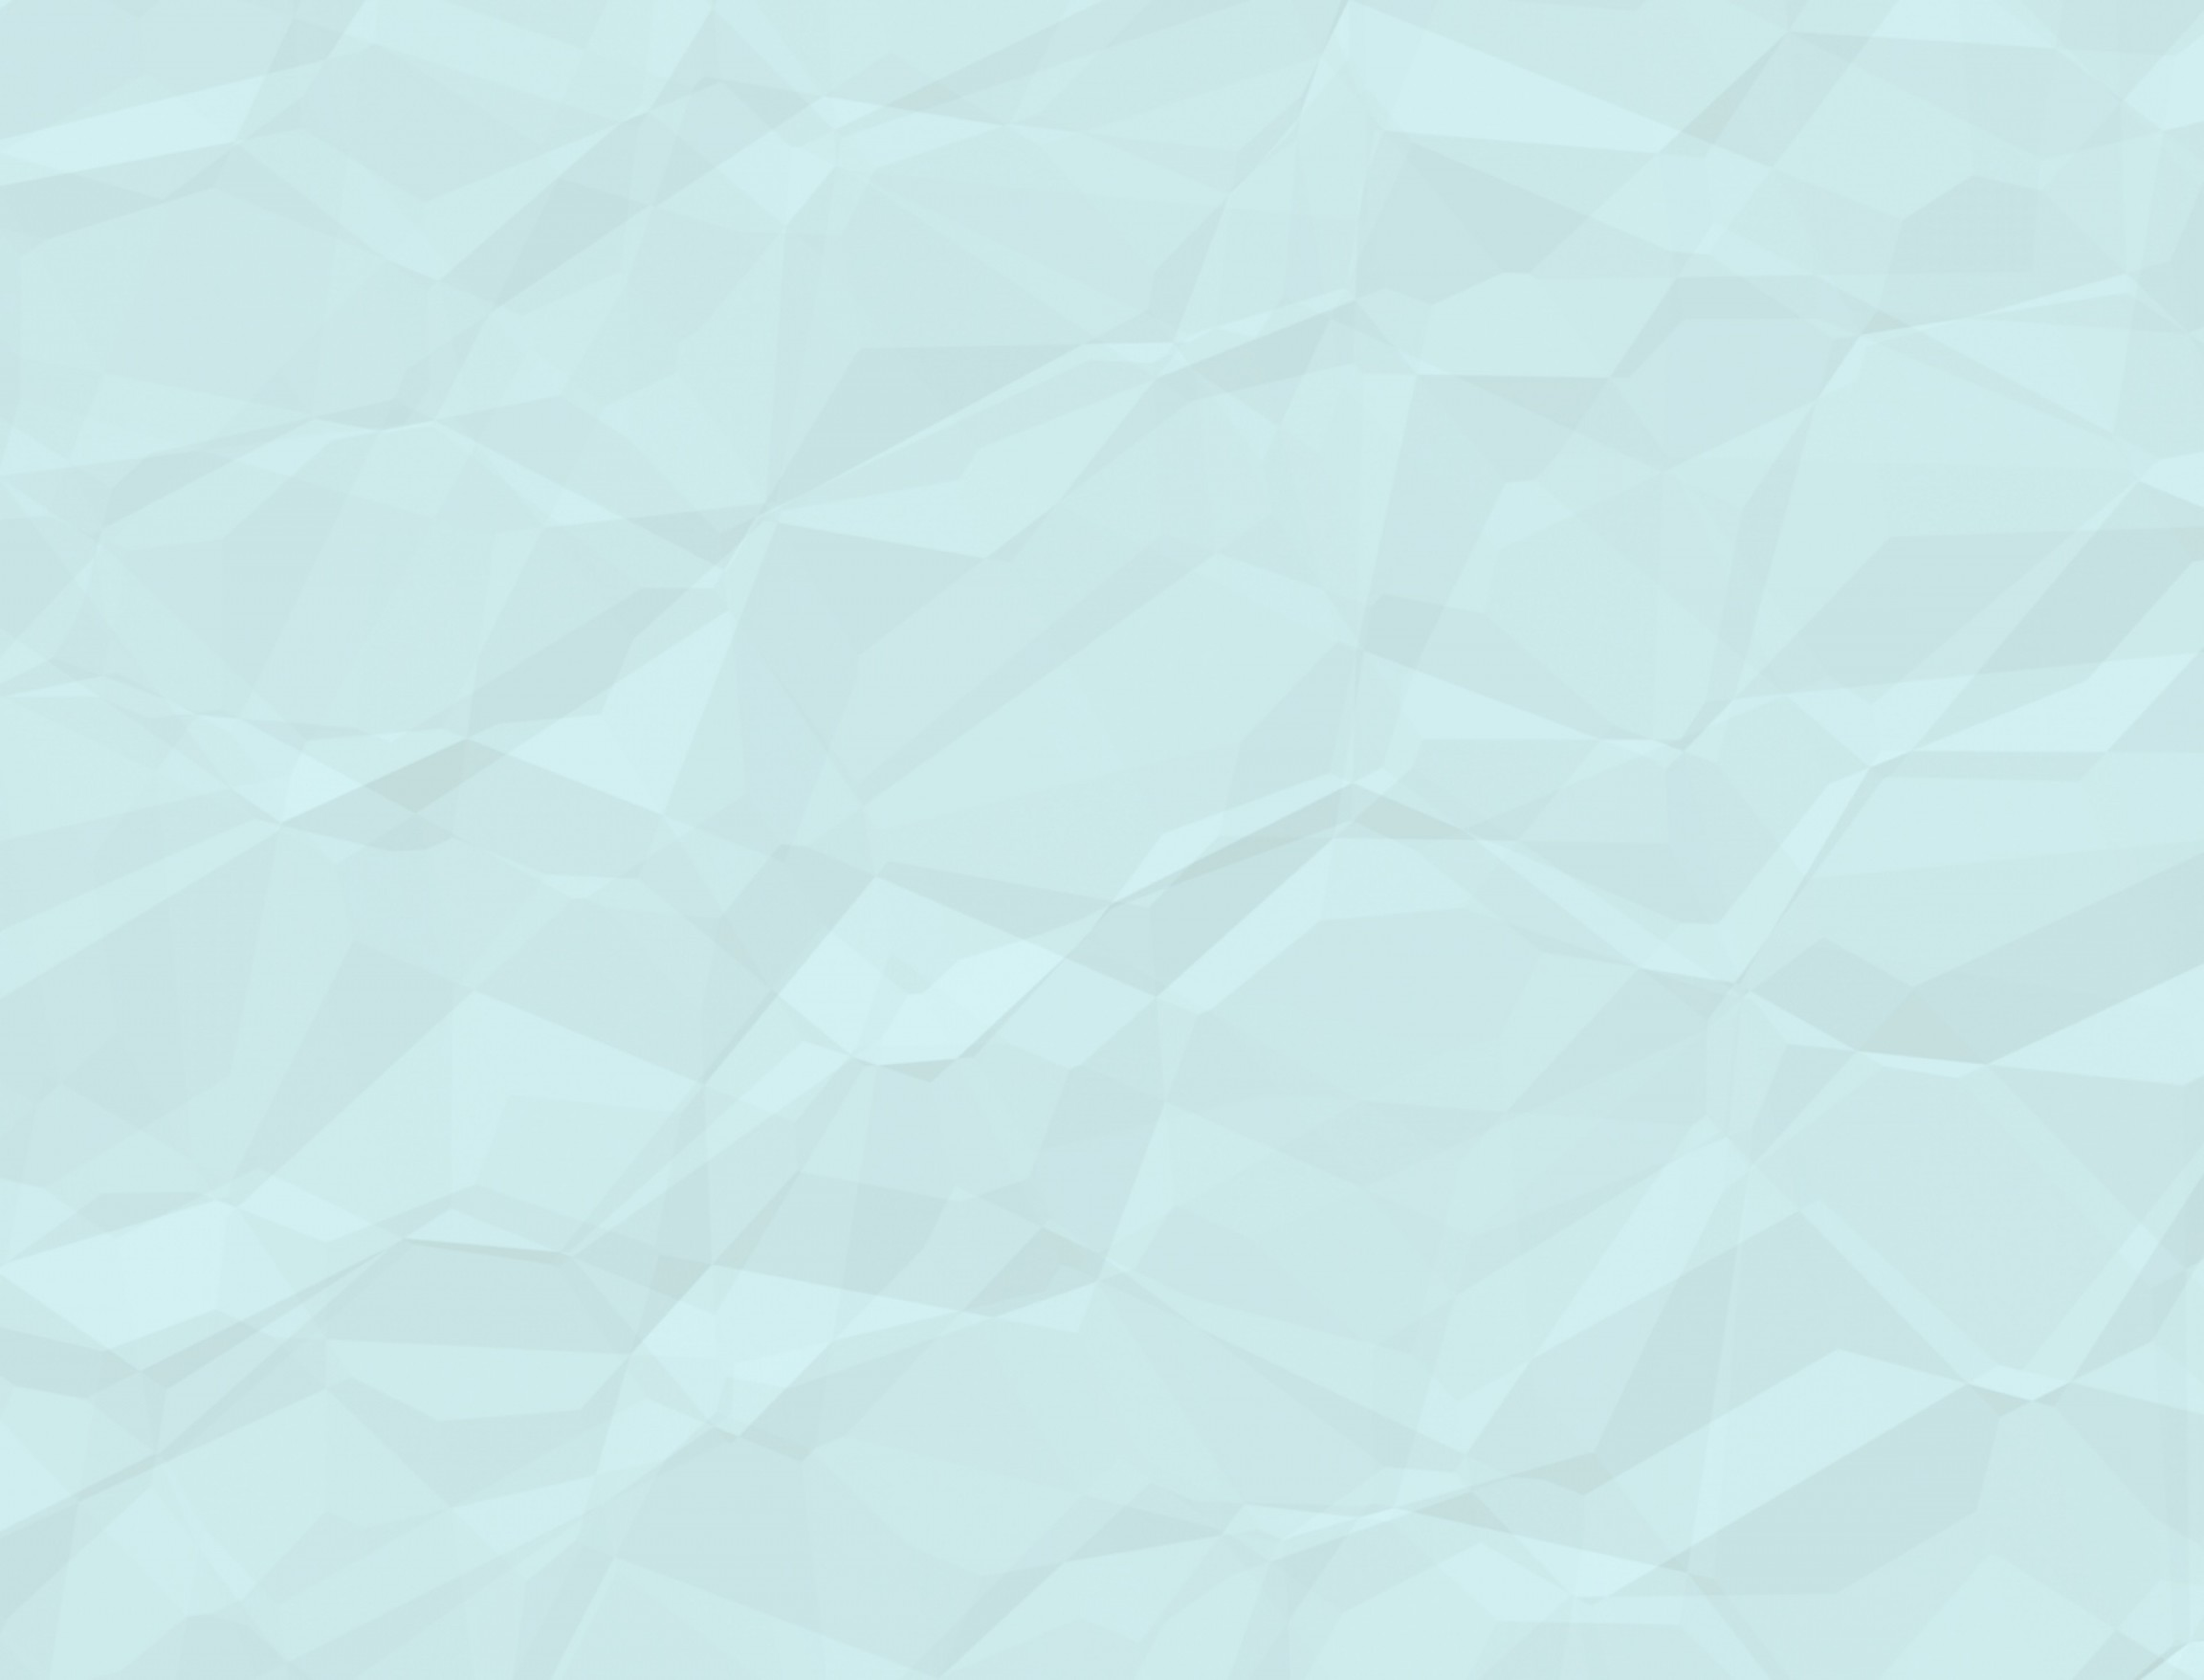 Crinkled Paper Vector: Paper Background Texture Creased Crinkledpaper Page Empty Area Blank